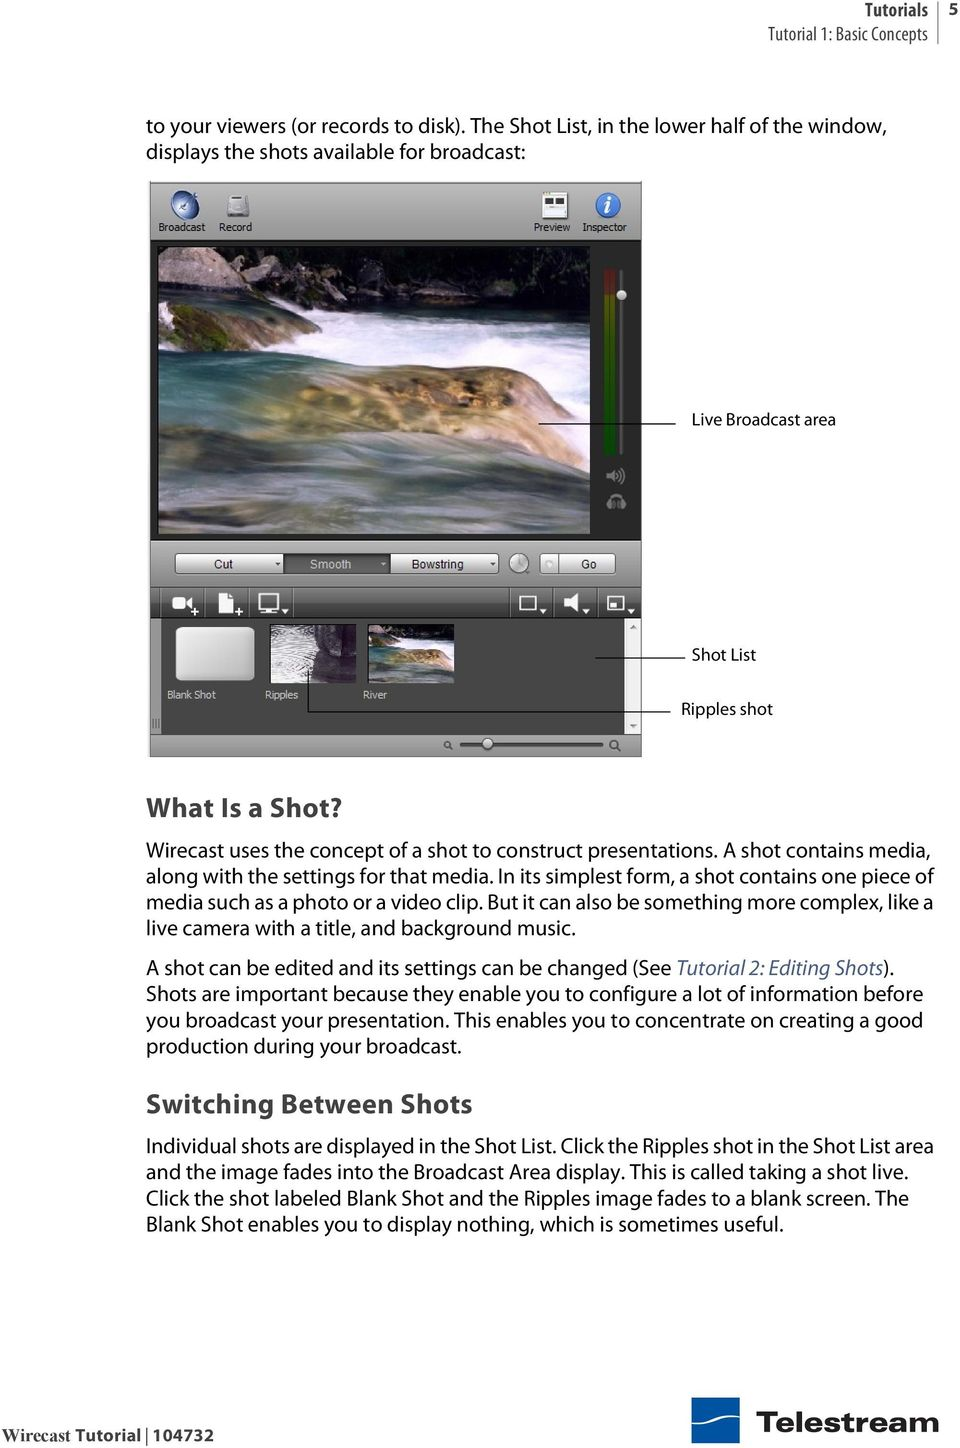 Wirecast uses the concept of a shot to construct presentations. A shot contains media, along with the settings for that media.